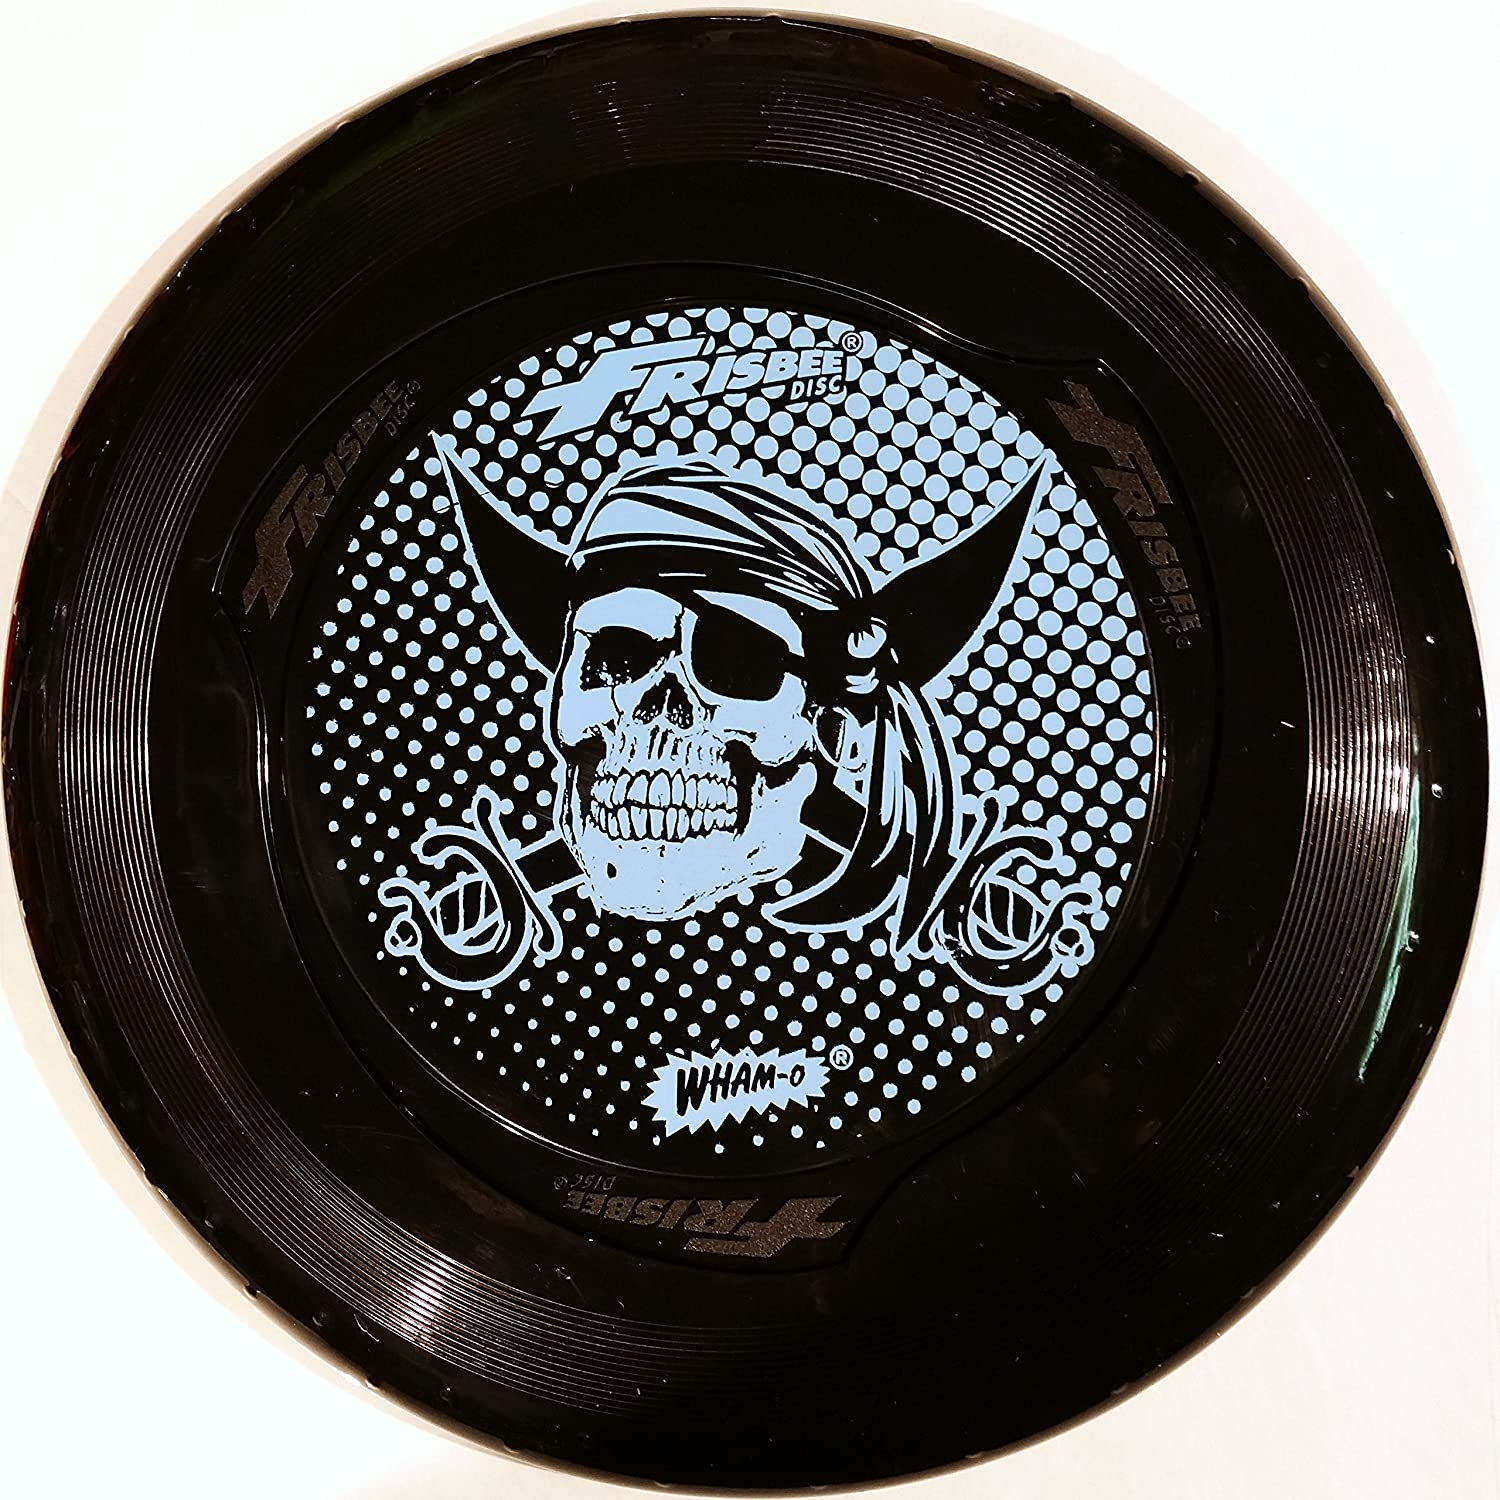 wham-o-fun-flyer-frisbee-disc-in-black-with-pirate-skull-design